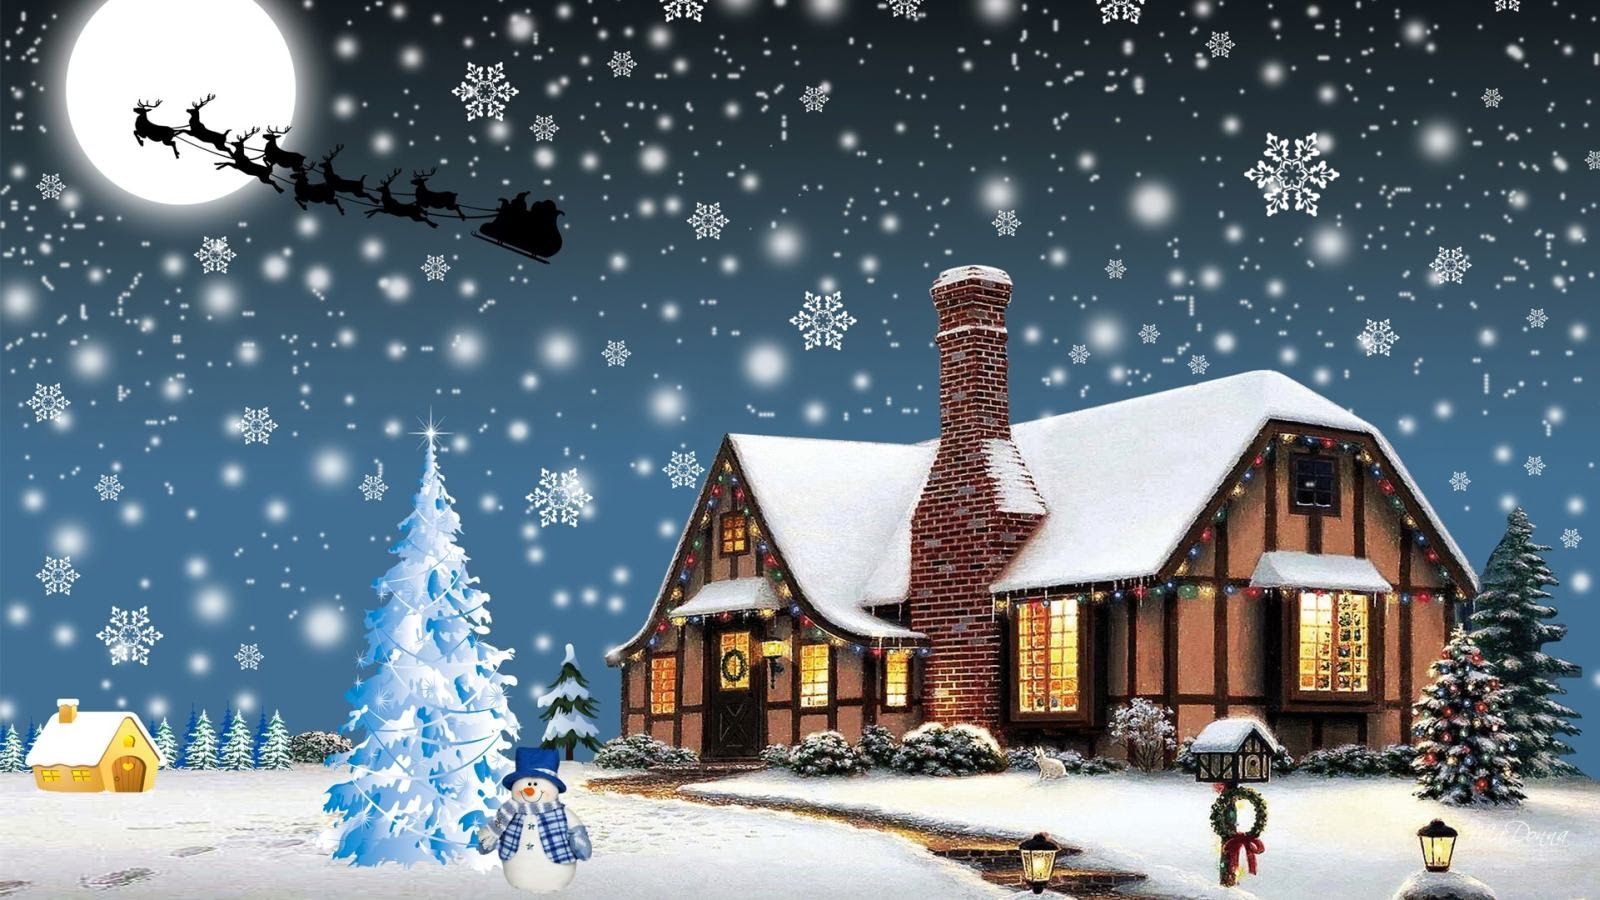 Christmas Wallpapers download hd 1600x900